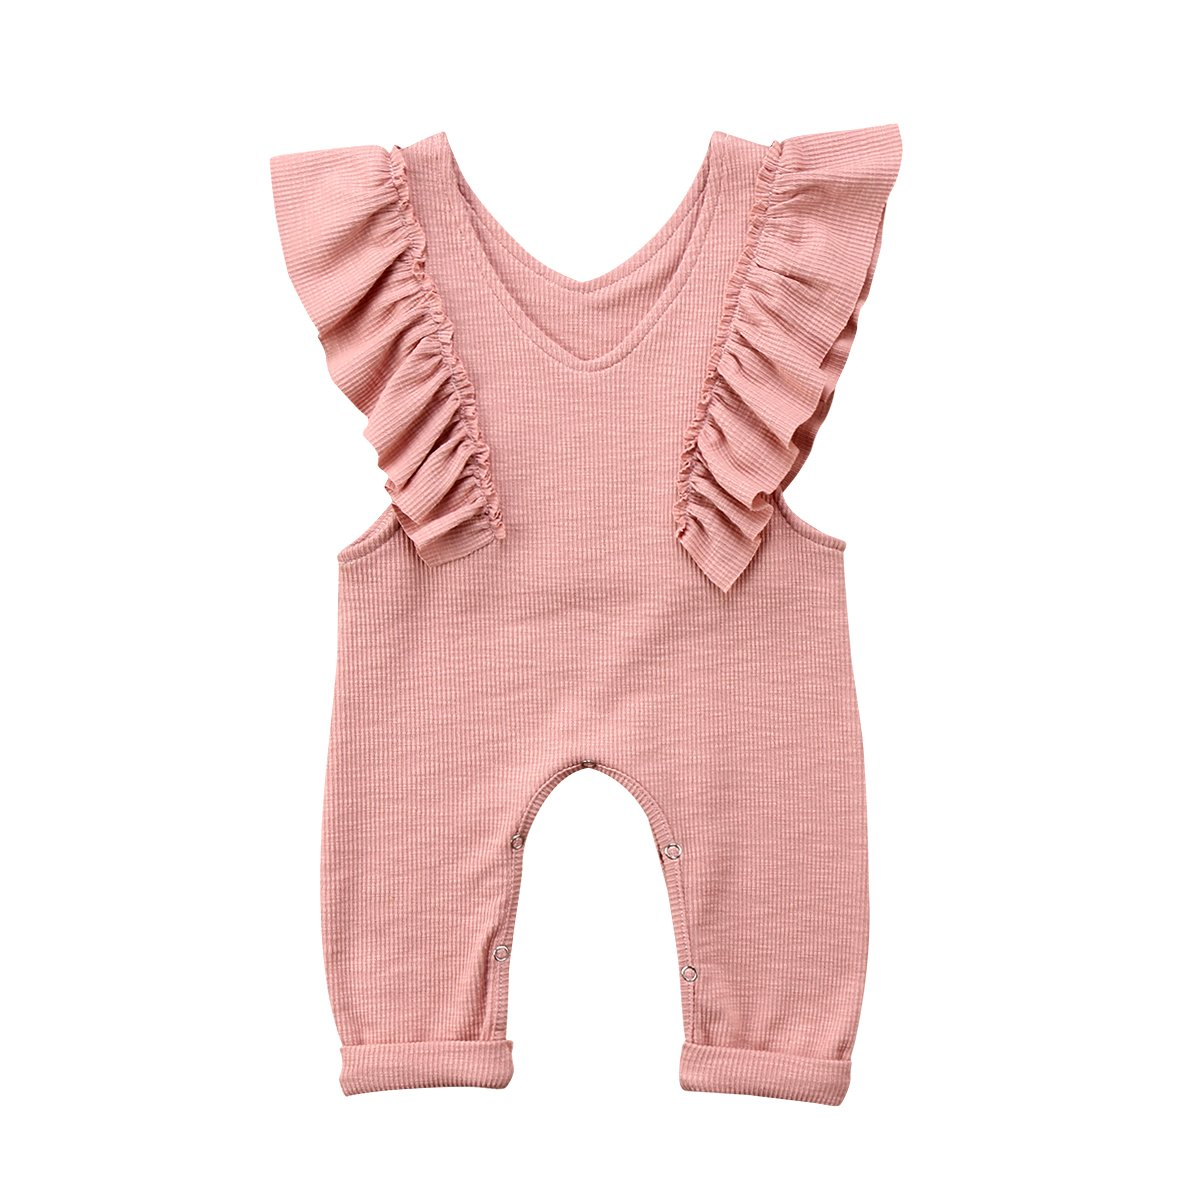 Mother & Kids Bodysuits & One-pieces Kids Baby Sleeveless Striped Rompers 2018 Summer Newborn Infant Ruffle Romper Sunsuit Clothes Outfits Design Jumpsuit